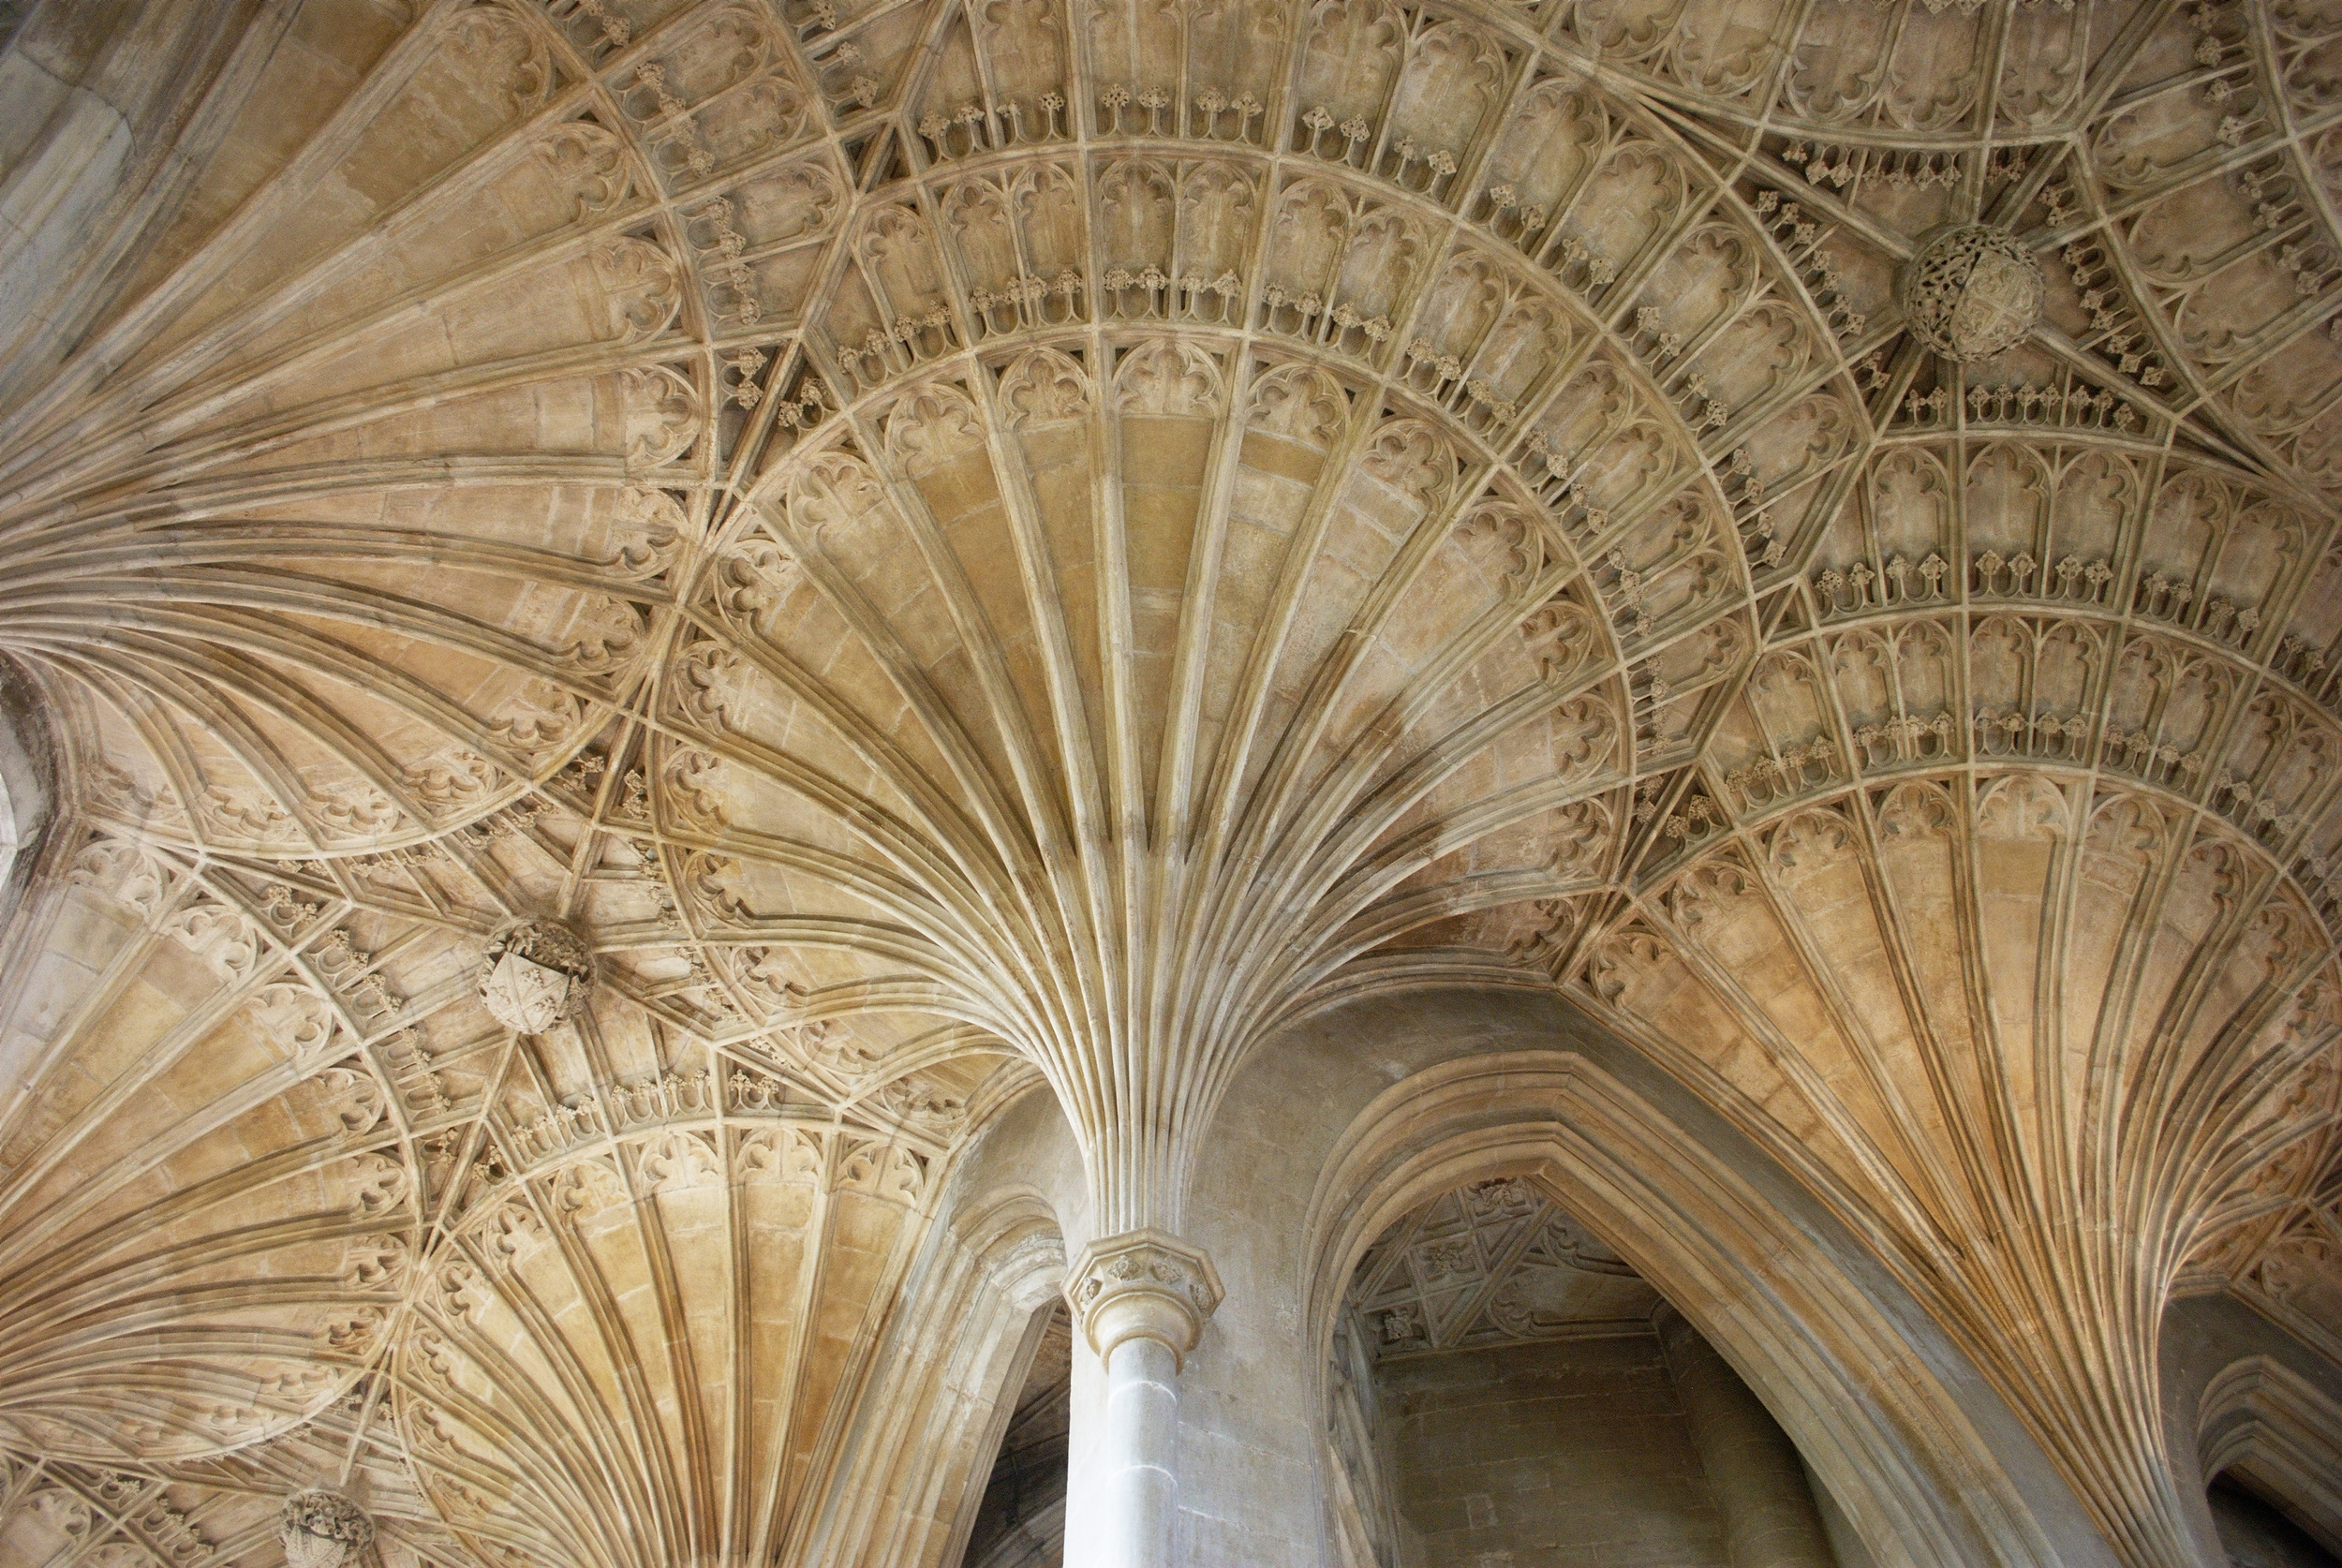 File:Peterborough Cathedral fan vaulting.jpg - Wikimedia Commons Gothic Architecture Flying Buttress